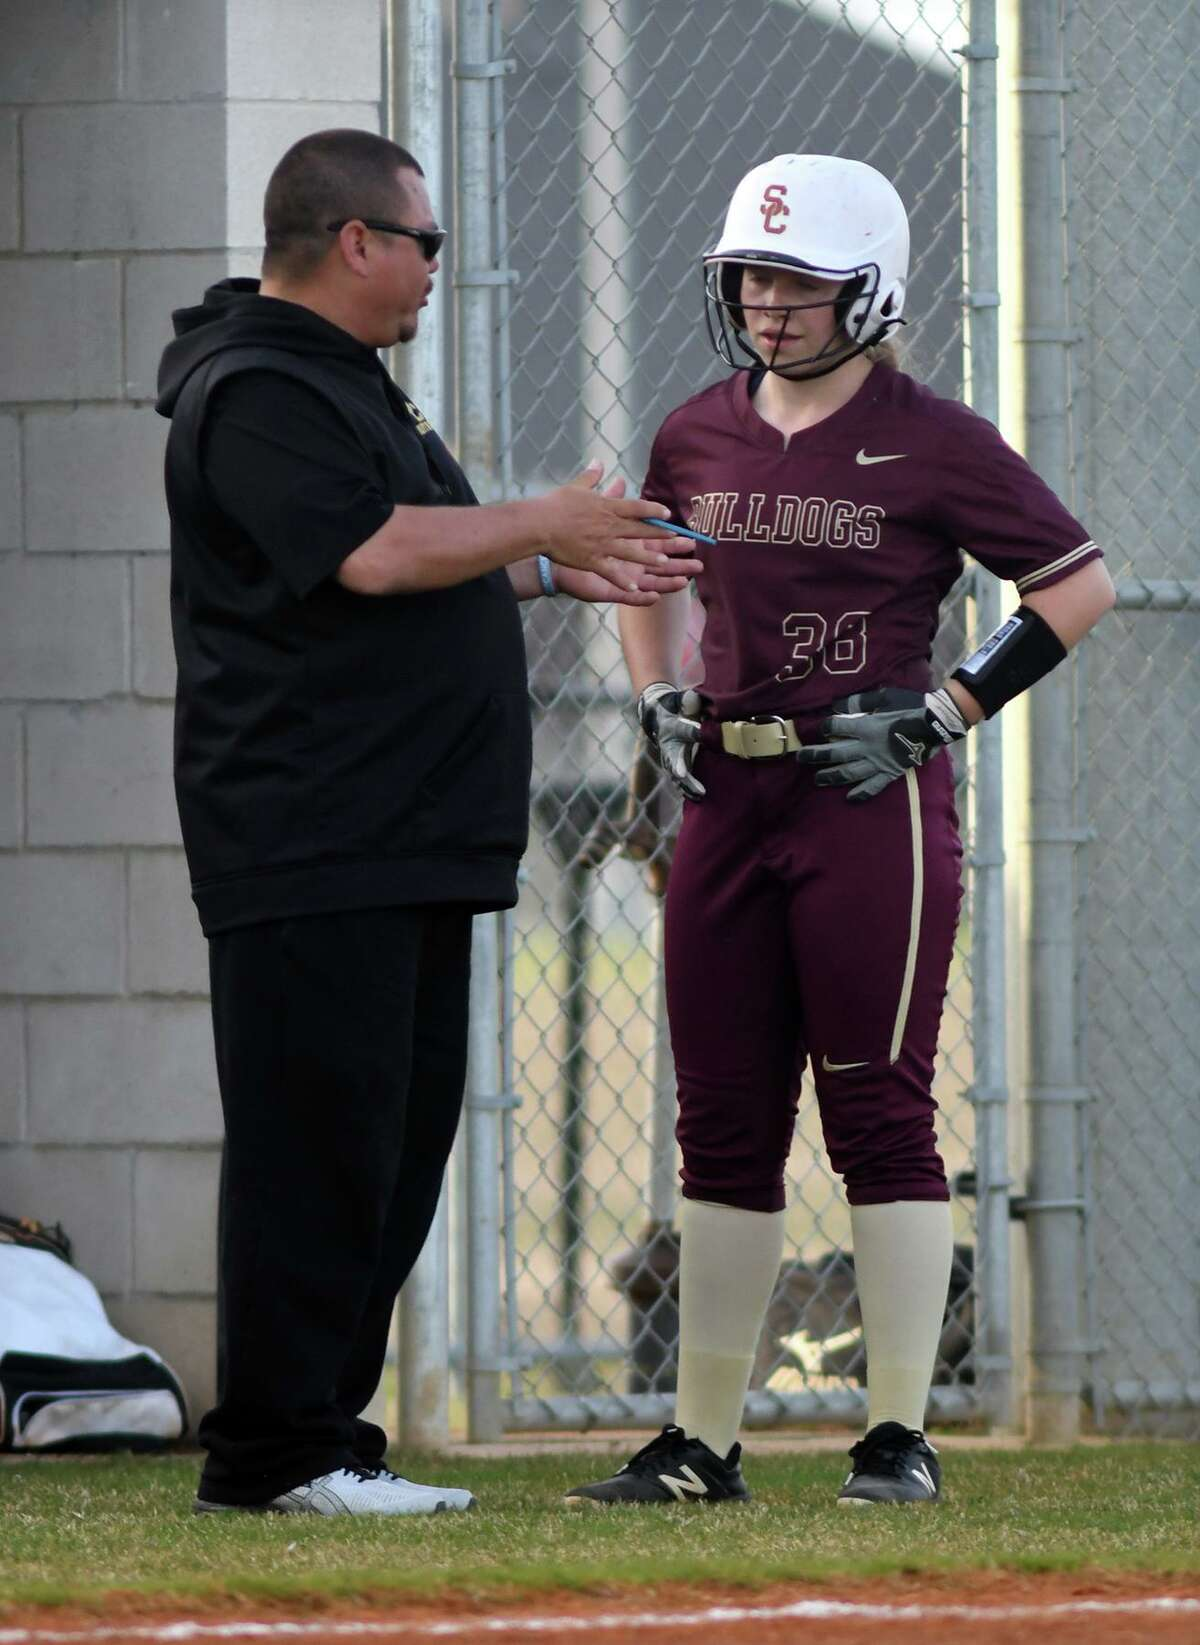 Summer Creek Head Softball Coach Gabe Castillo, left, chats with sophomore first baseman Zoe Butts before her at bat against Katy Paetow during their matchup in the Katy ISD Invitational Varsity Softball Tournament at Paetow High School on Feb.14, 2019.